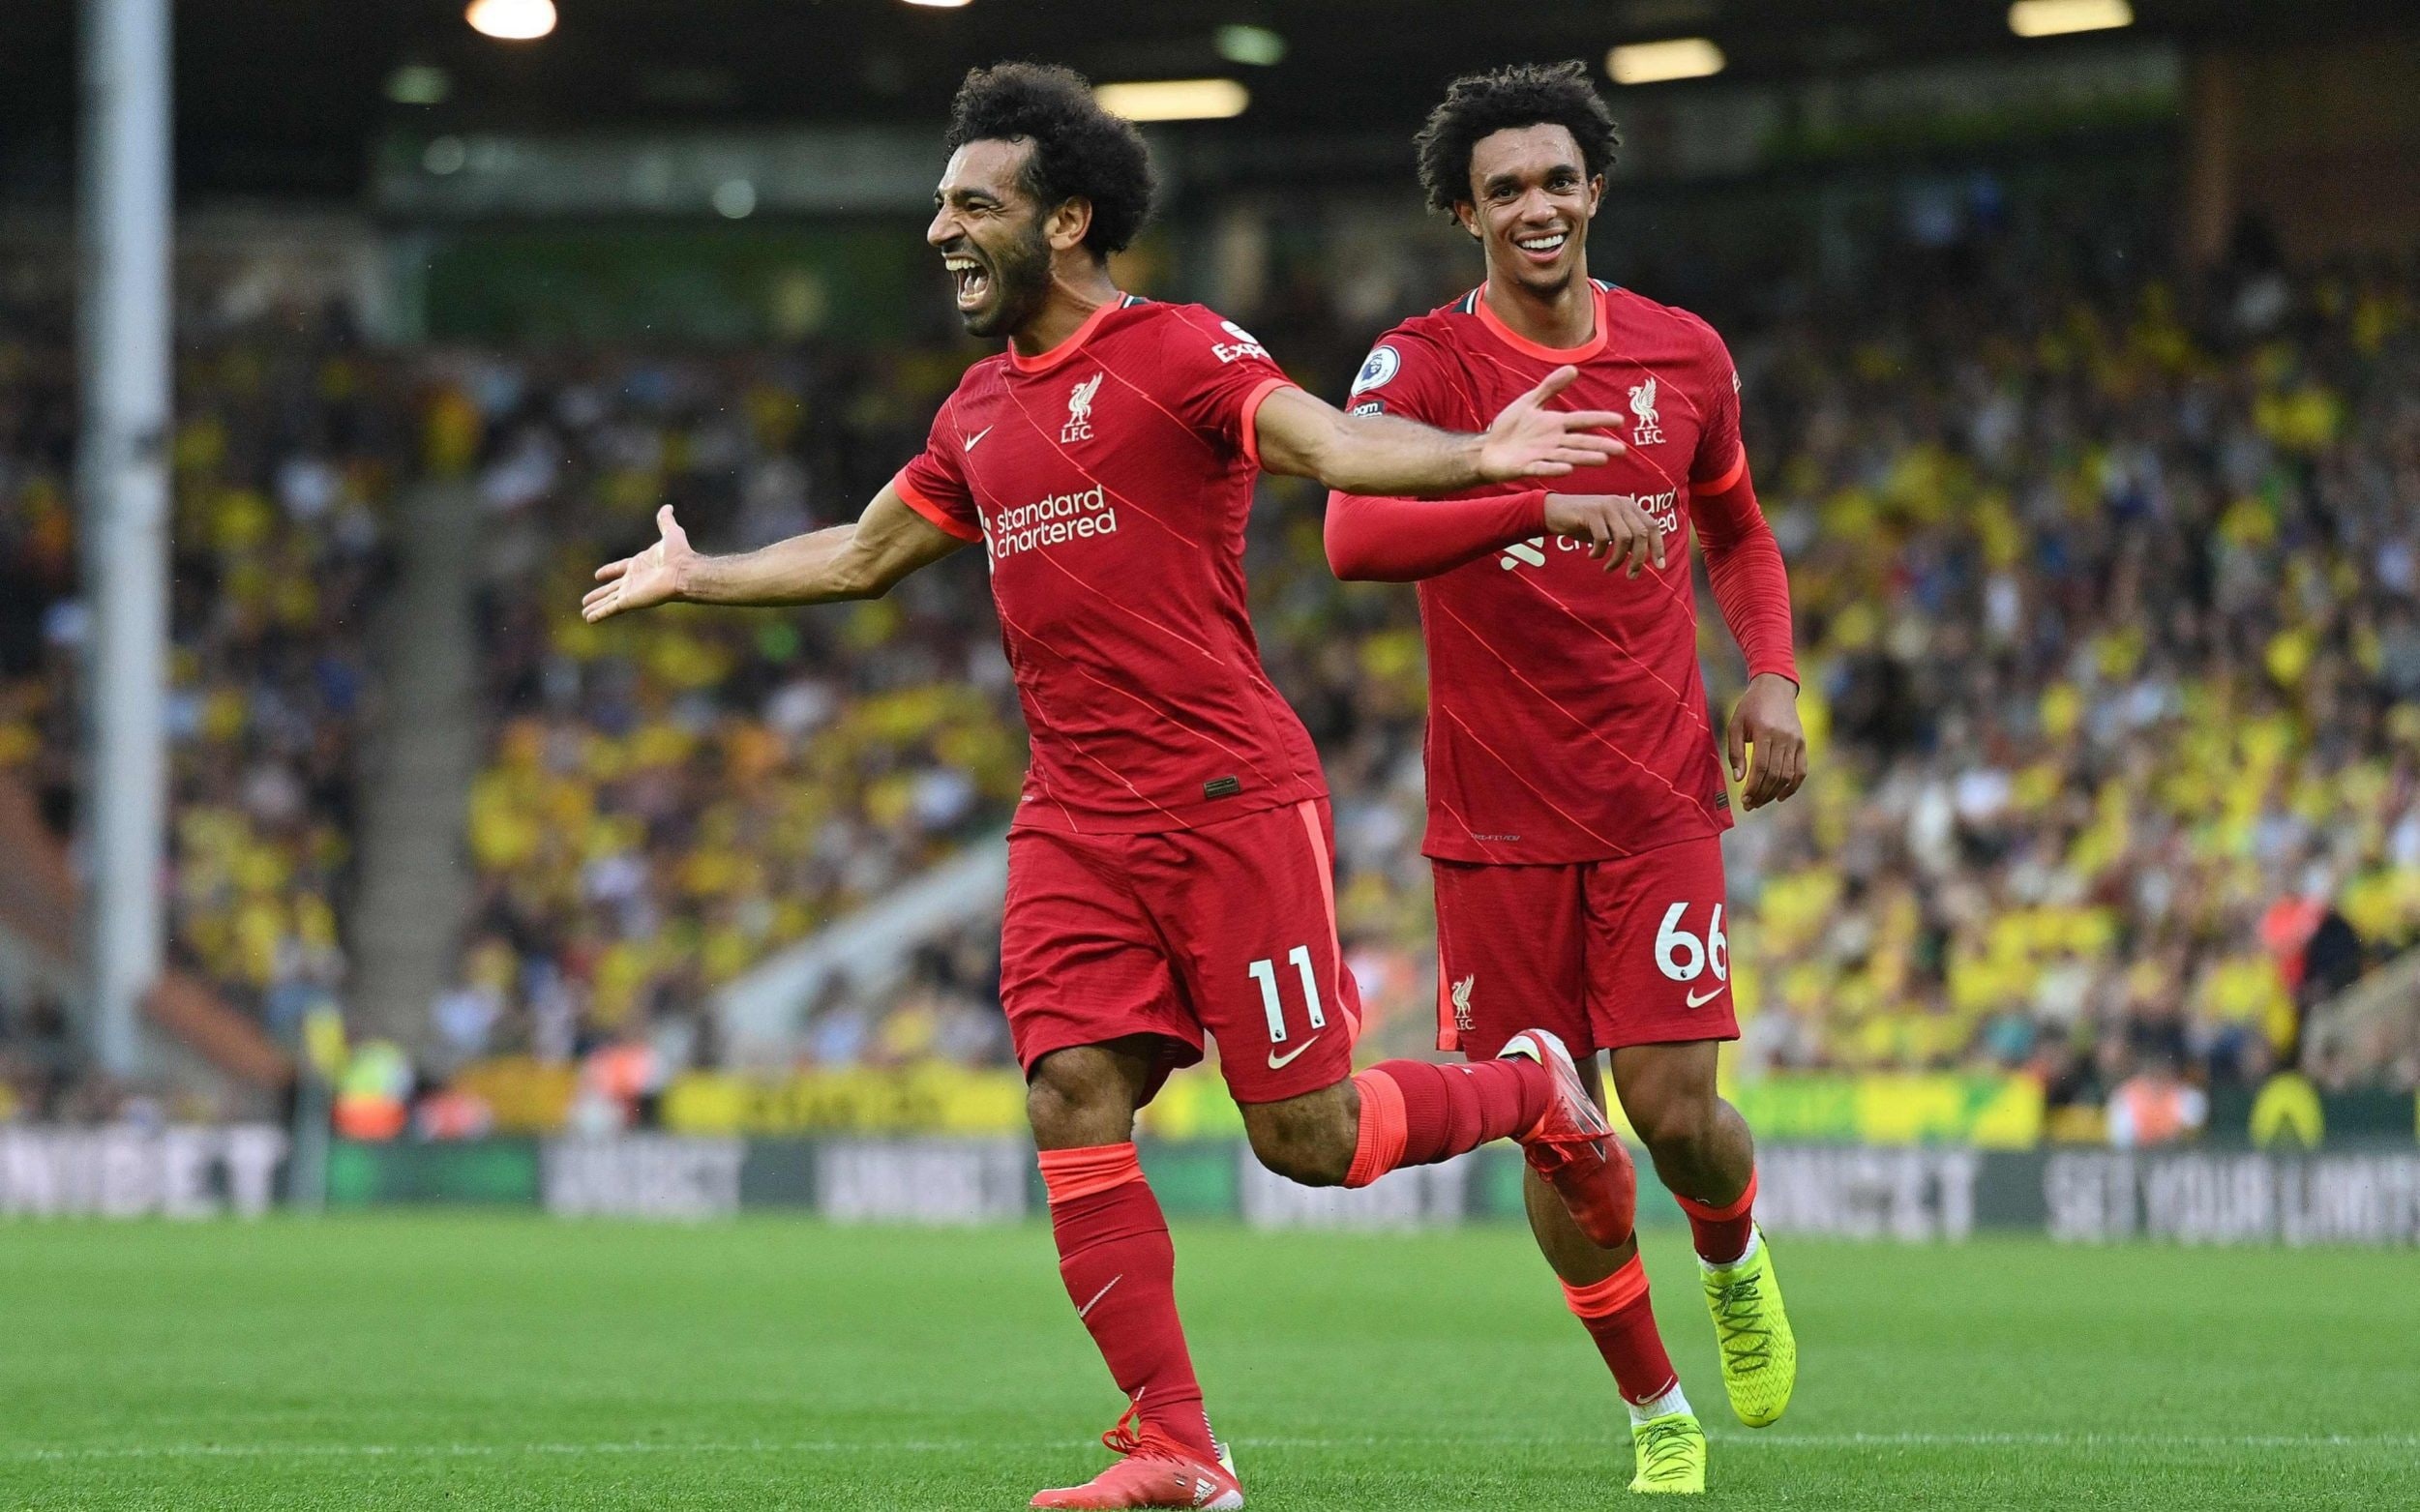 Liverpool cruise past Norwich in opener